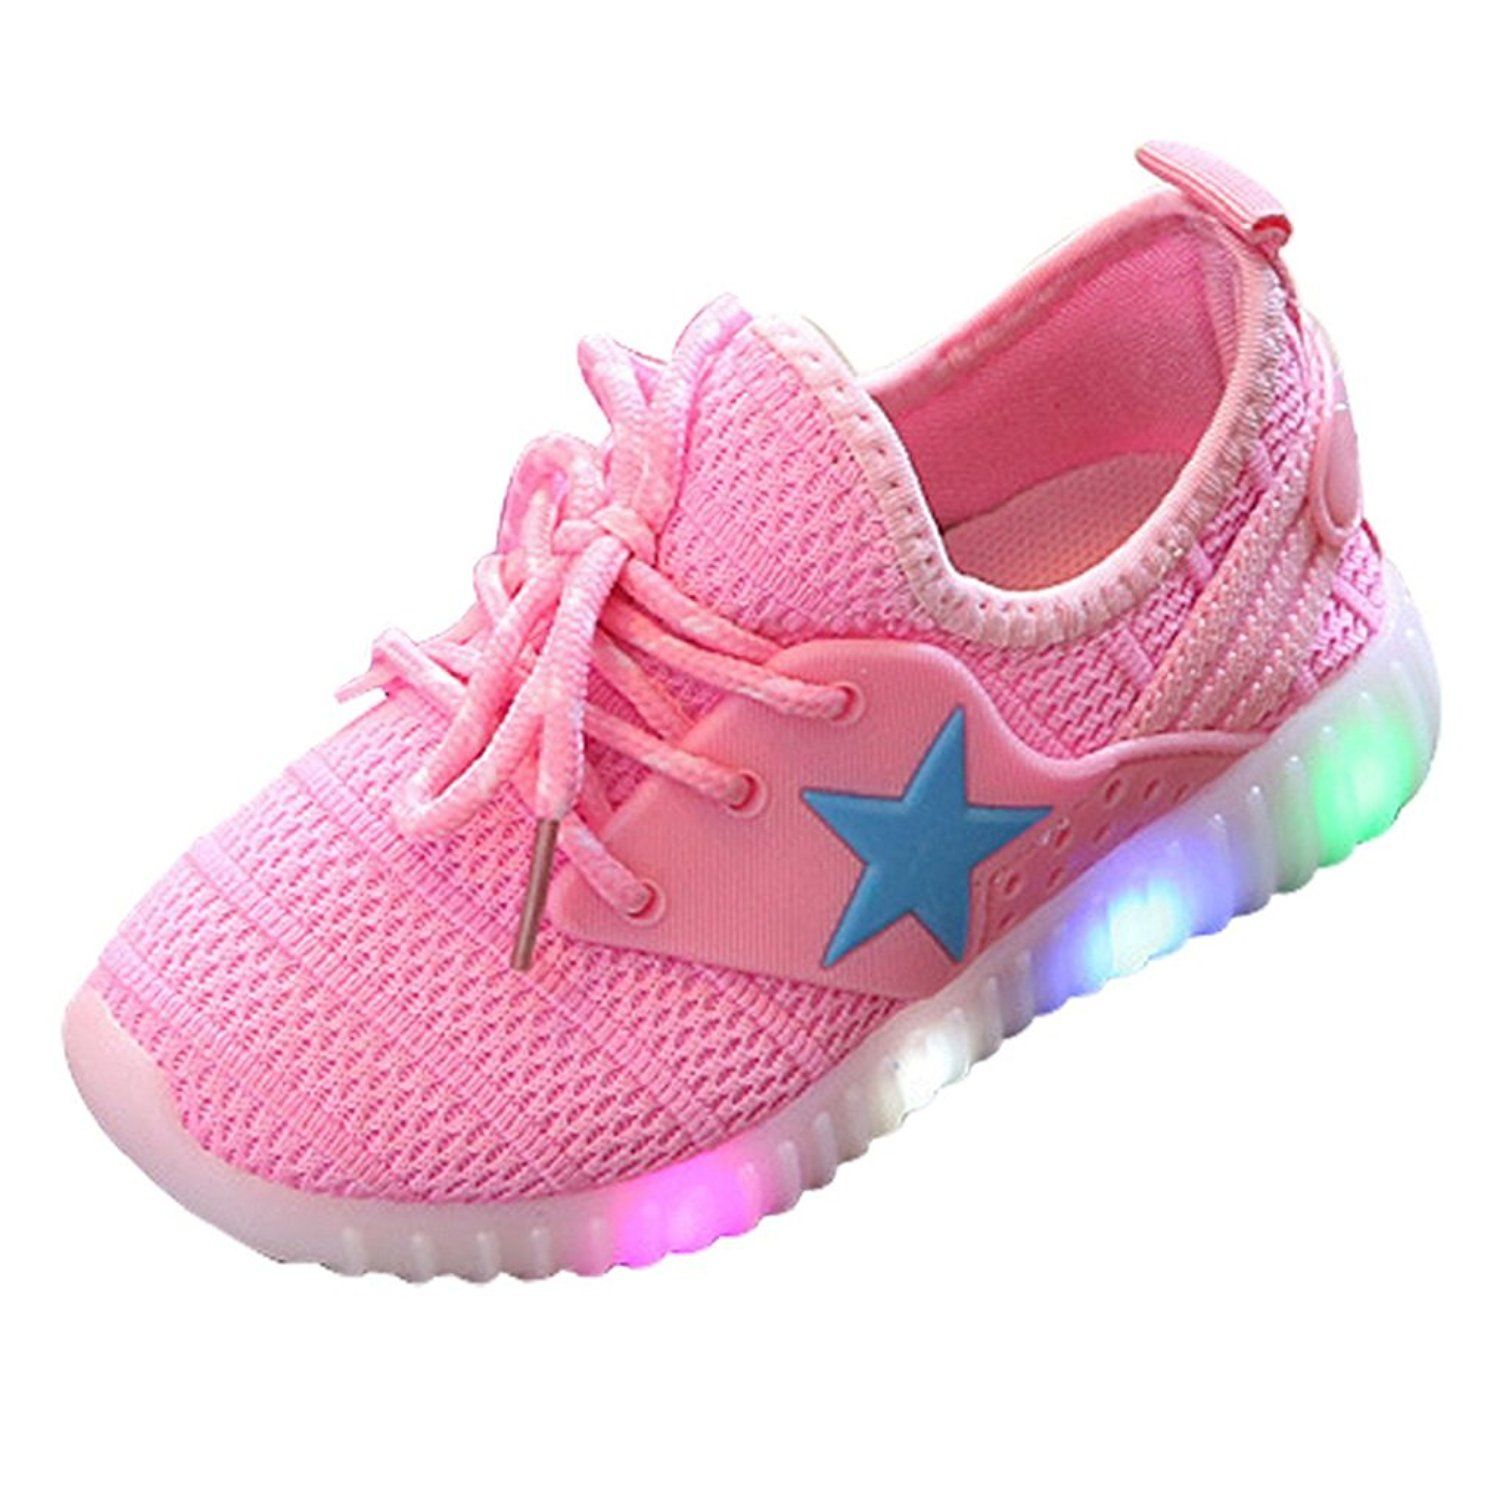 Appoi Baby Shoes Light Toddler Baby Boy Girl Sneakers Star Luminous